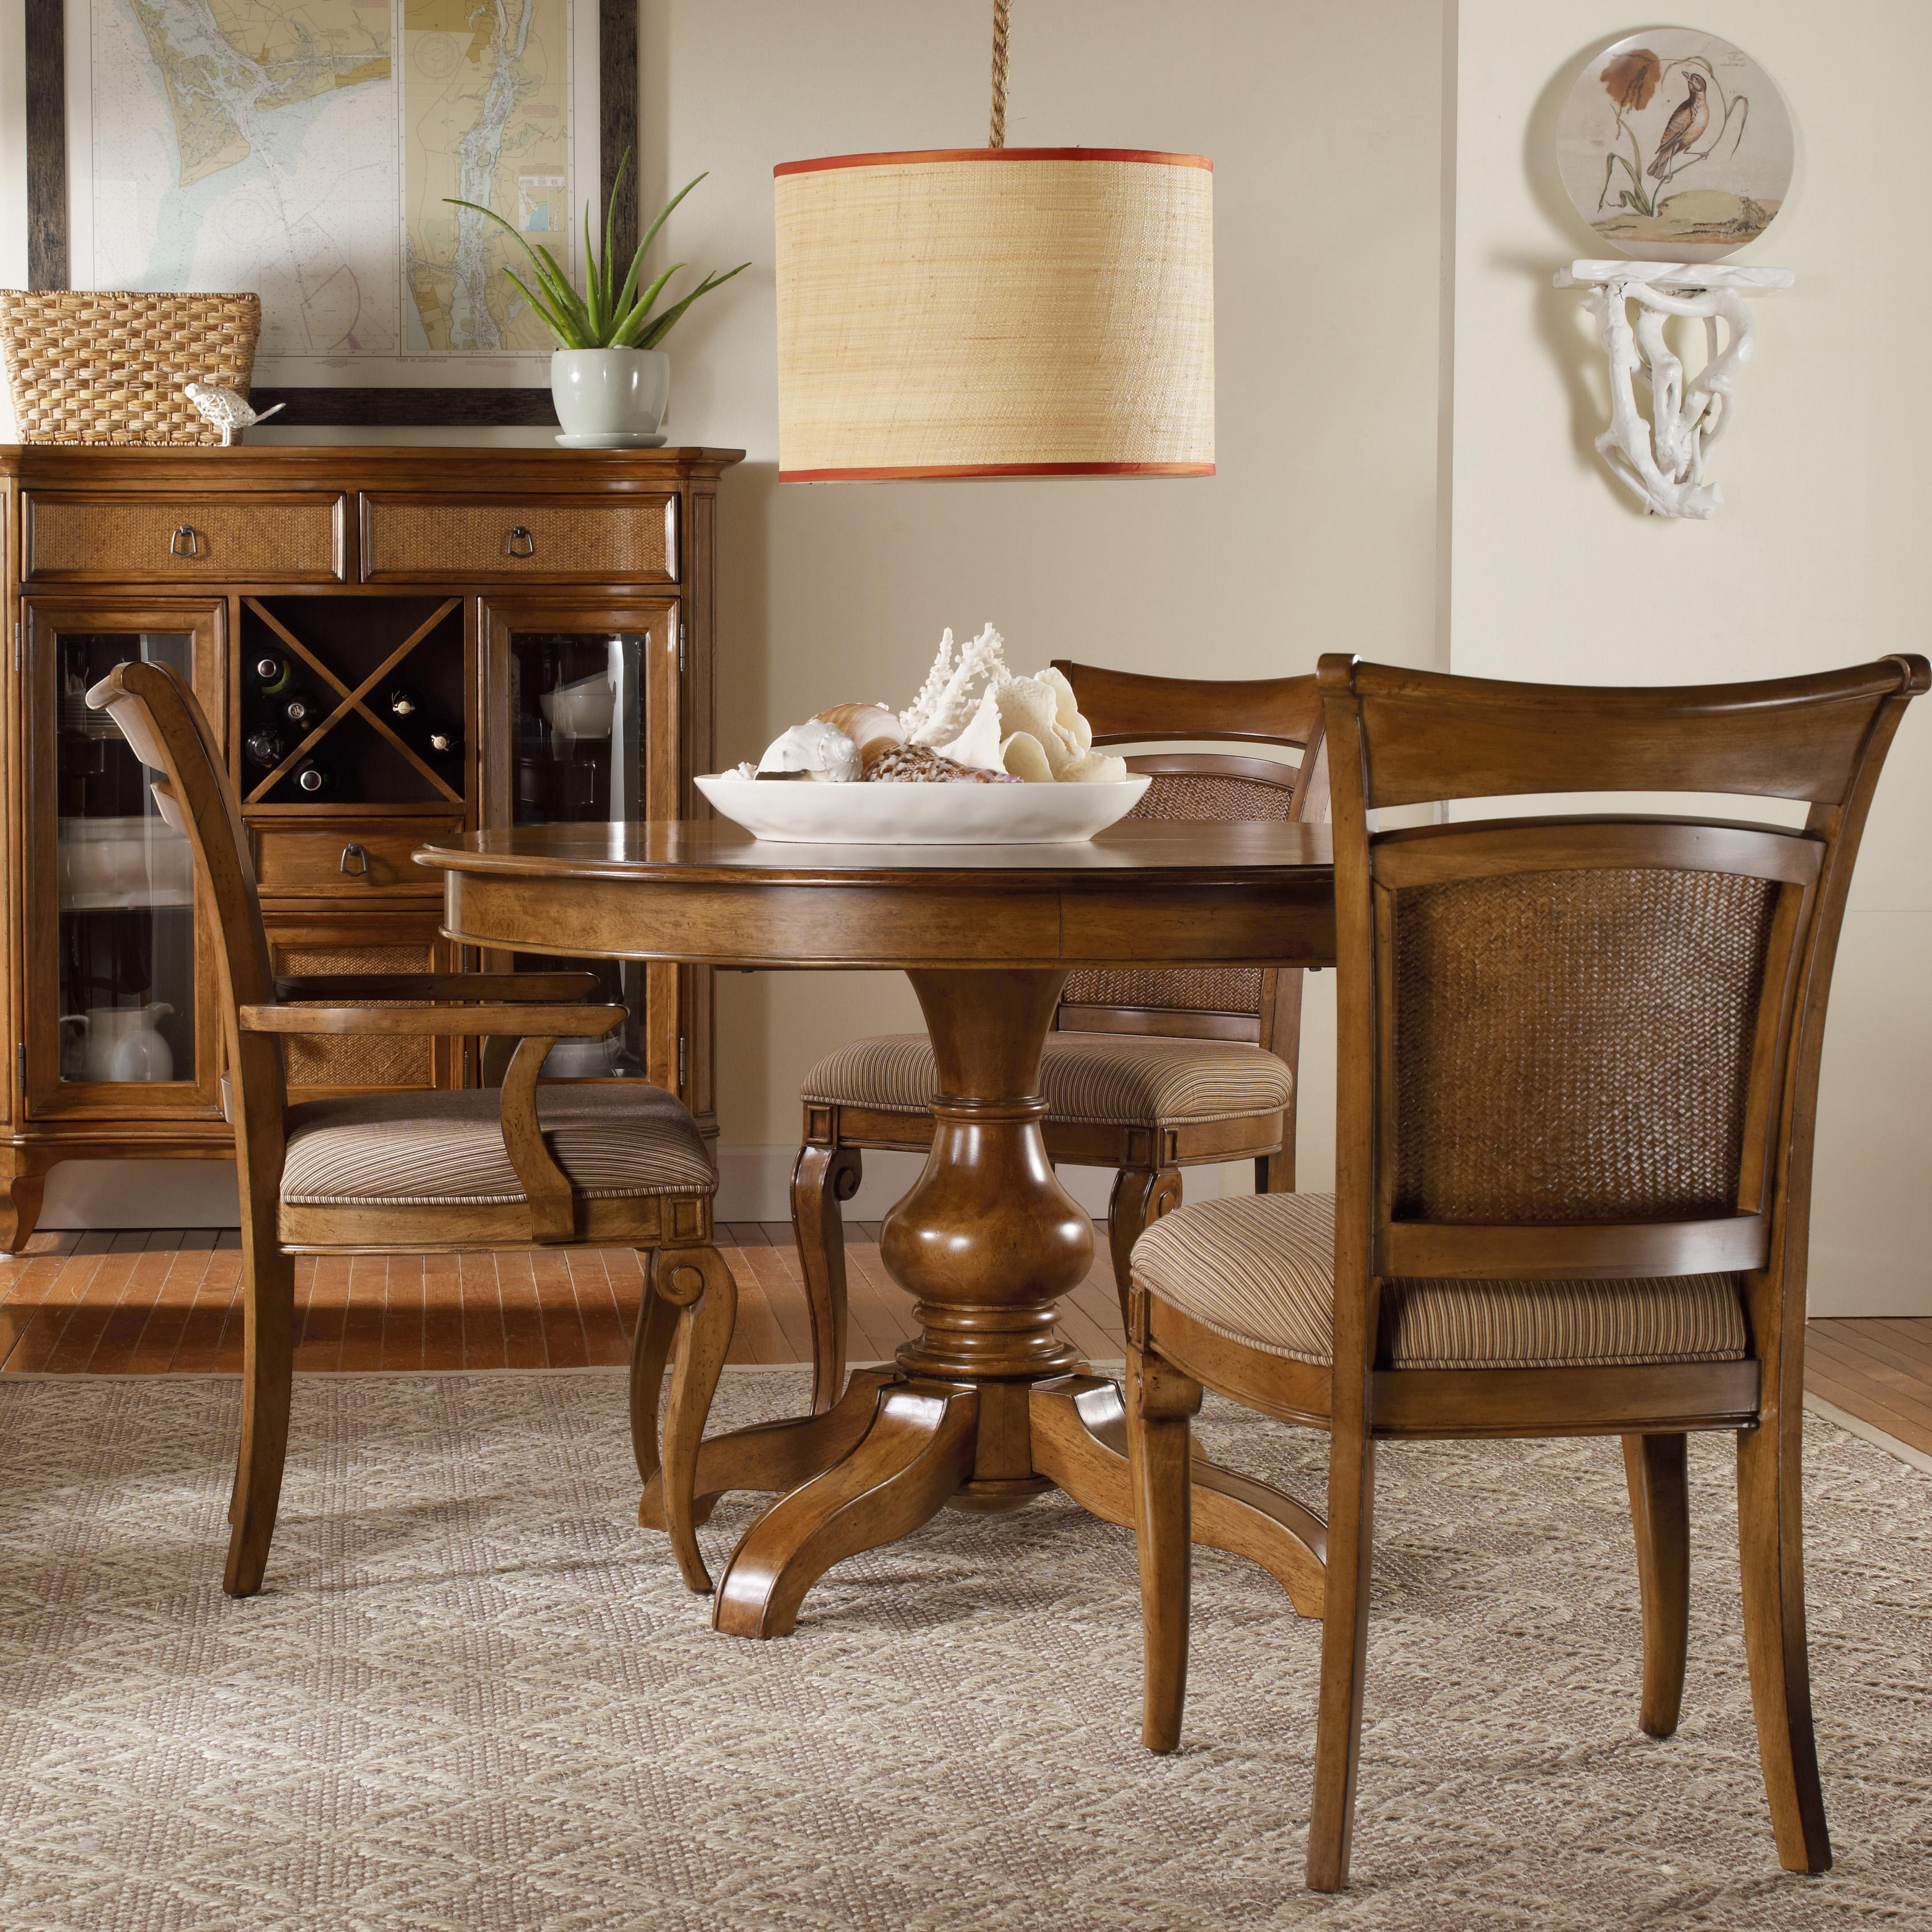 Hooker Furniture Windward Pedestal Dining Table & Raffia Chairs Inside Most Current Sofa Chairs With Dining Table (View 6 of 20)